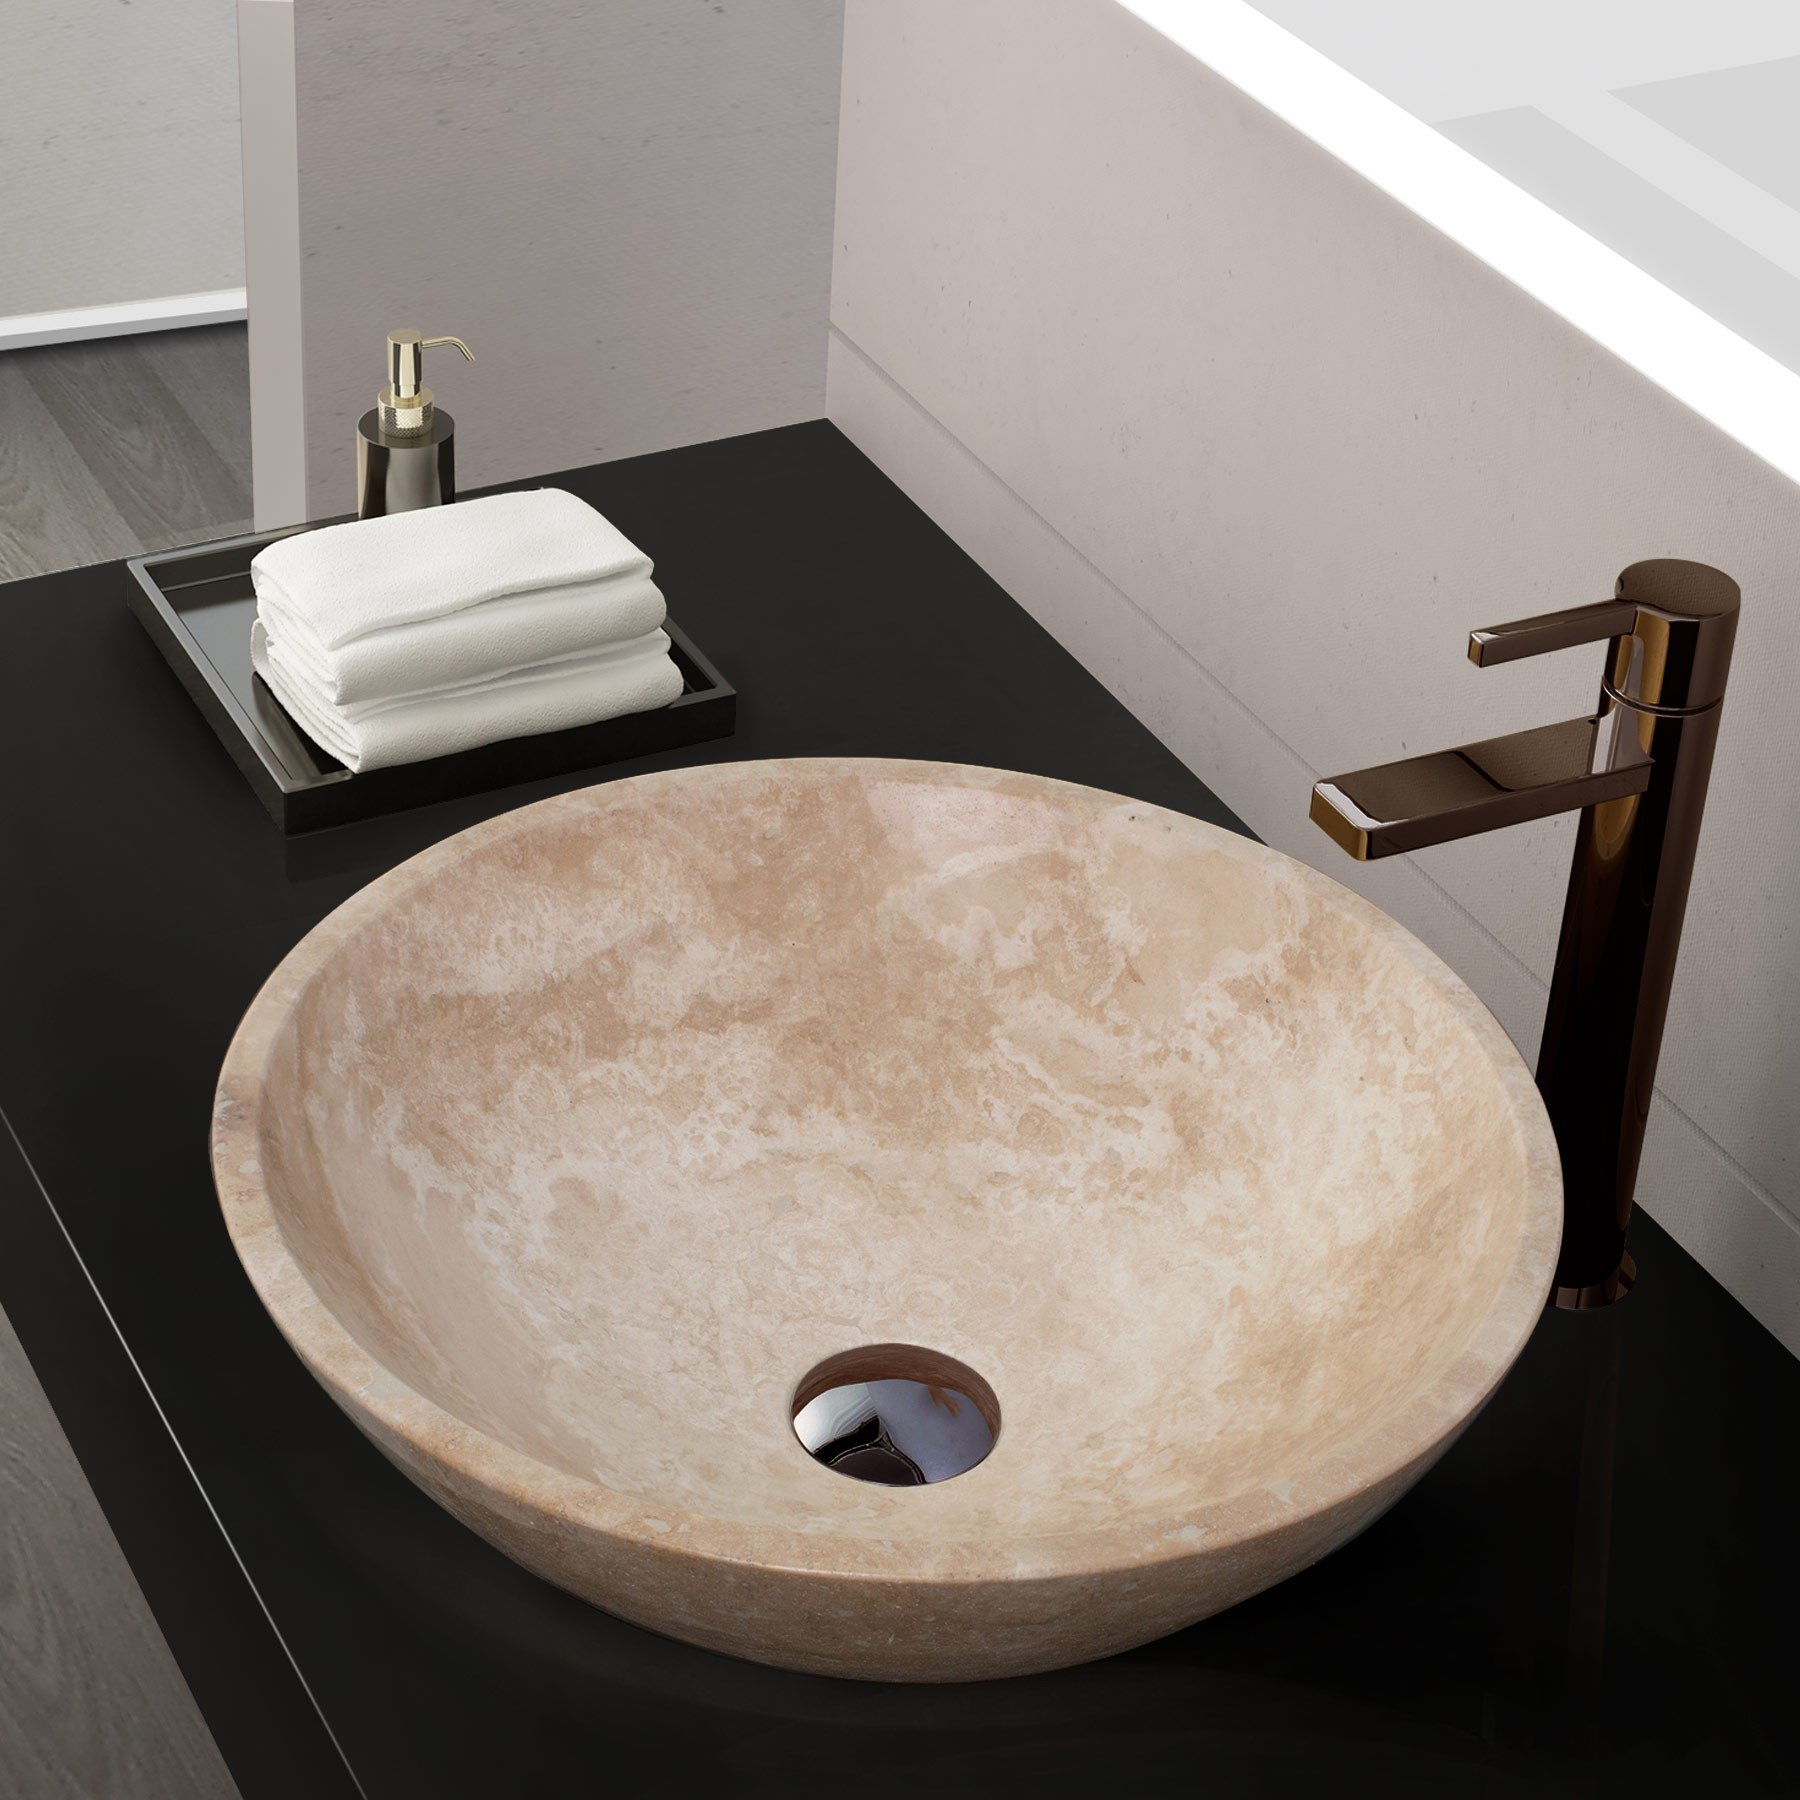 Helena Stone Vessel Sink, White Jade Travertine